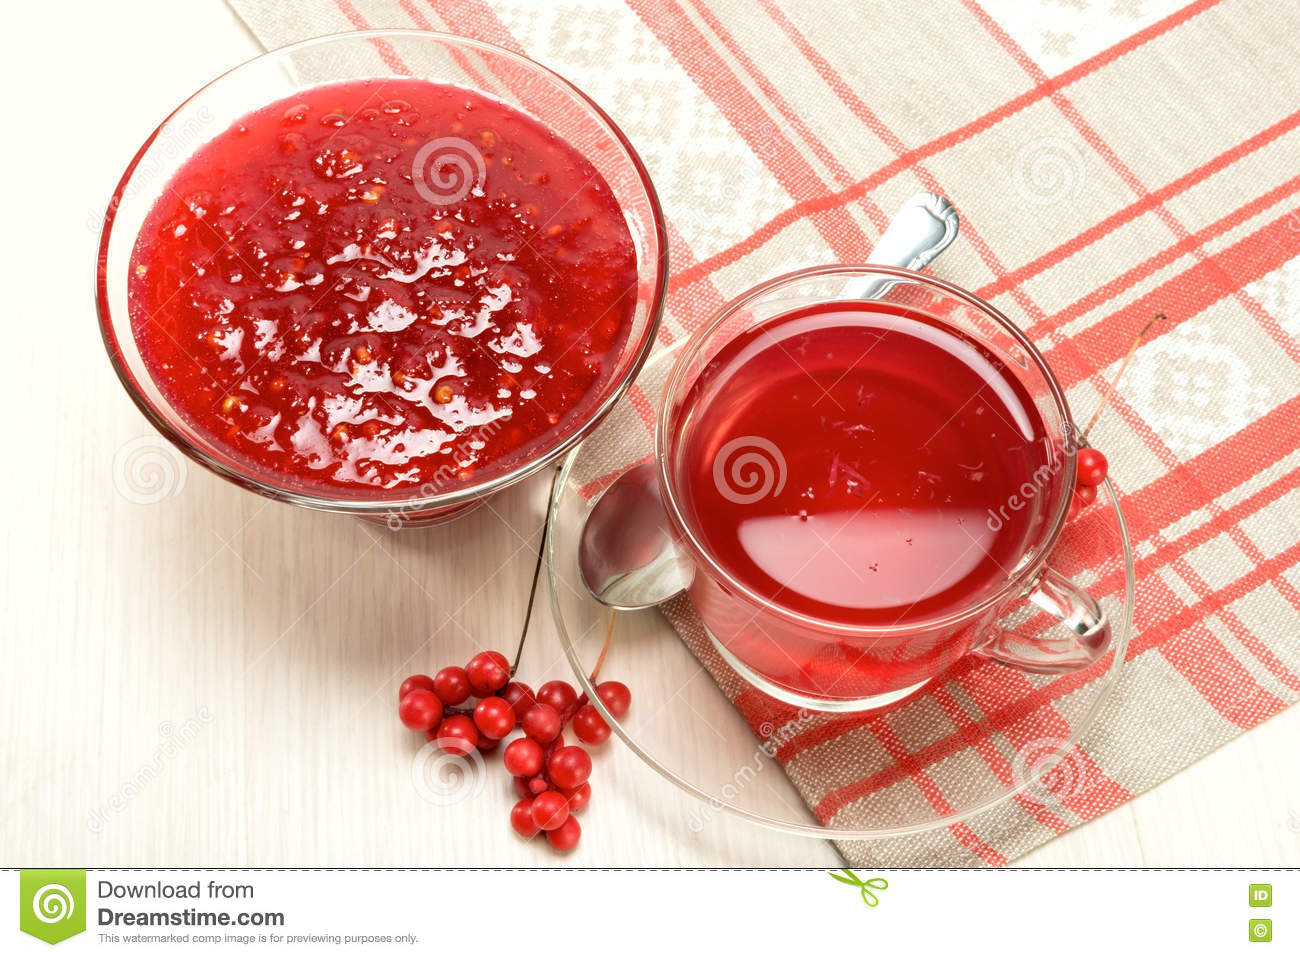 Jam And Drink From Schisandra Chinensis Stock Photo - Image